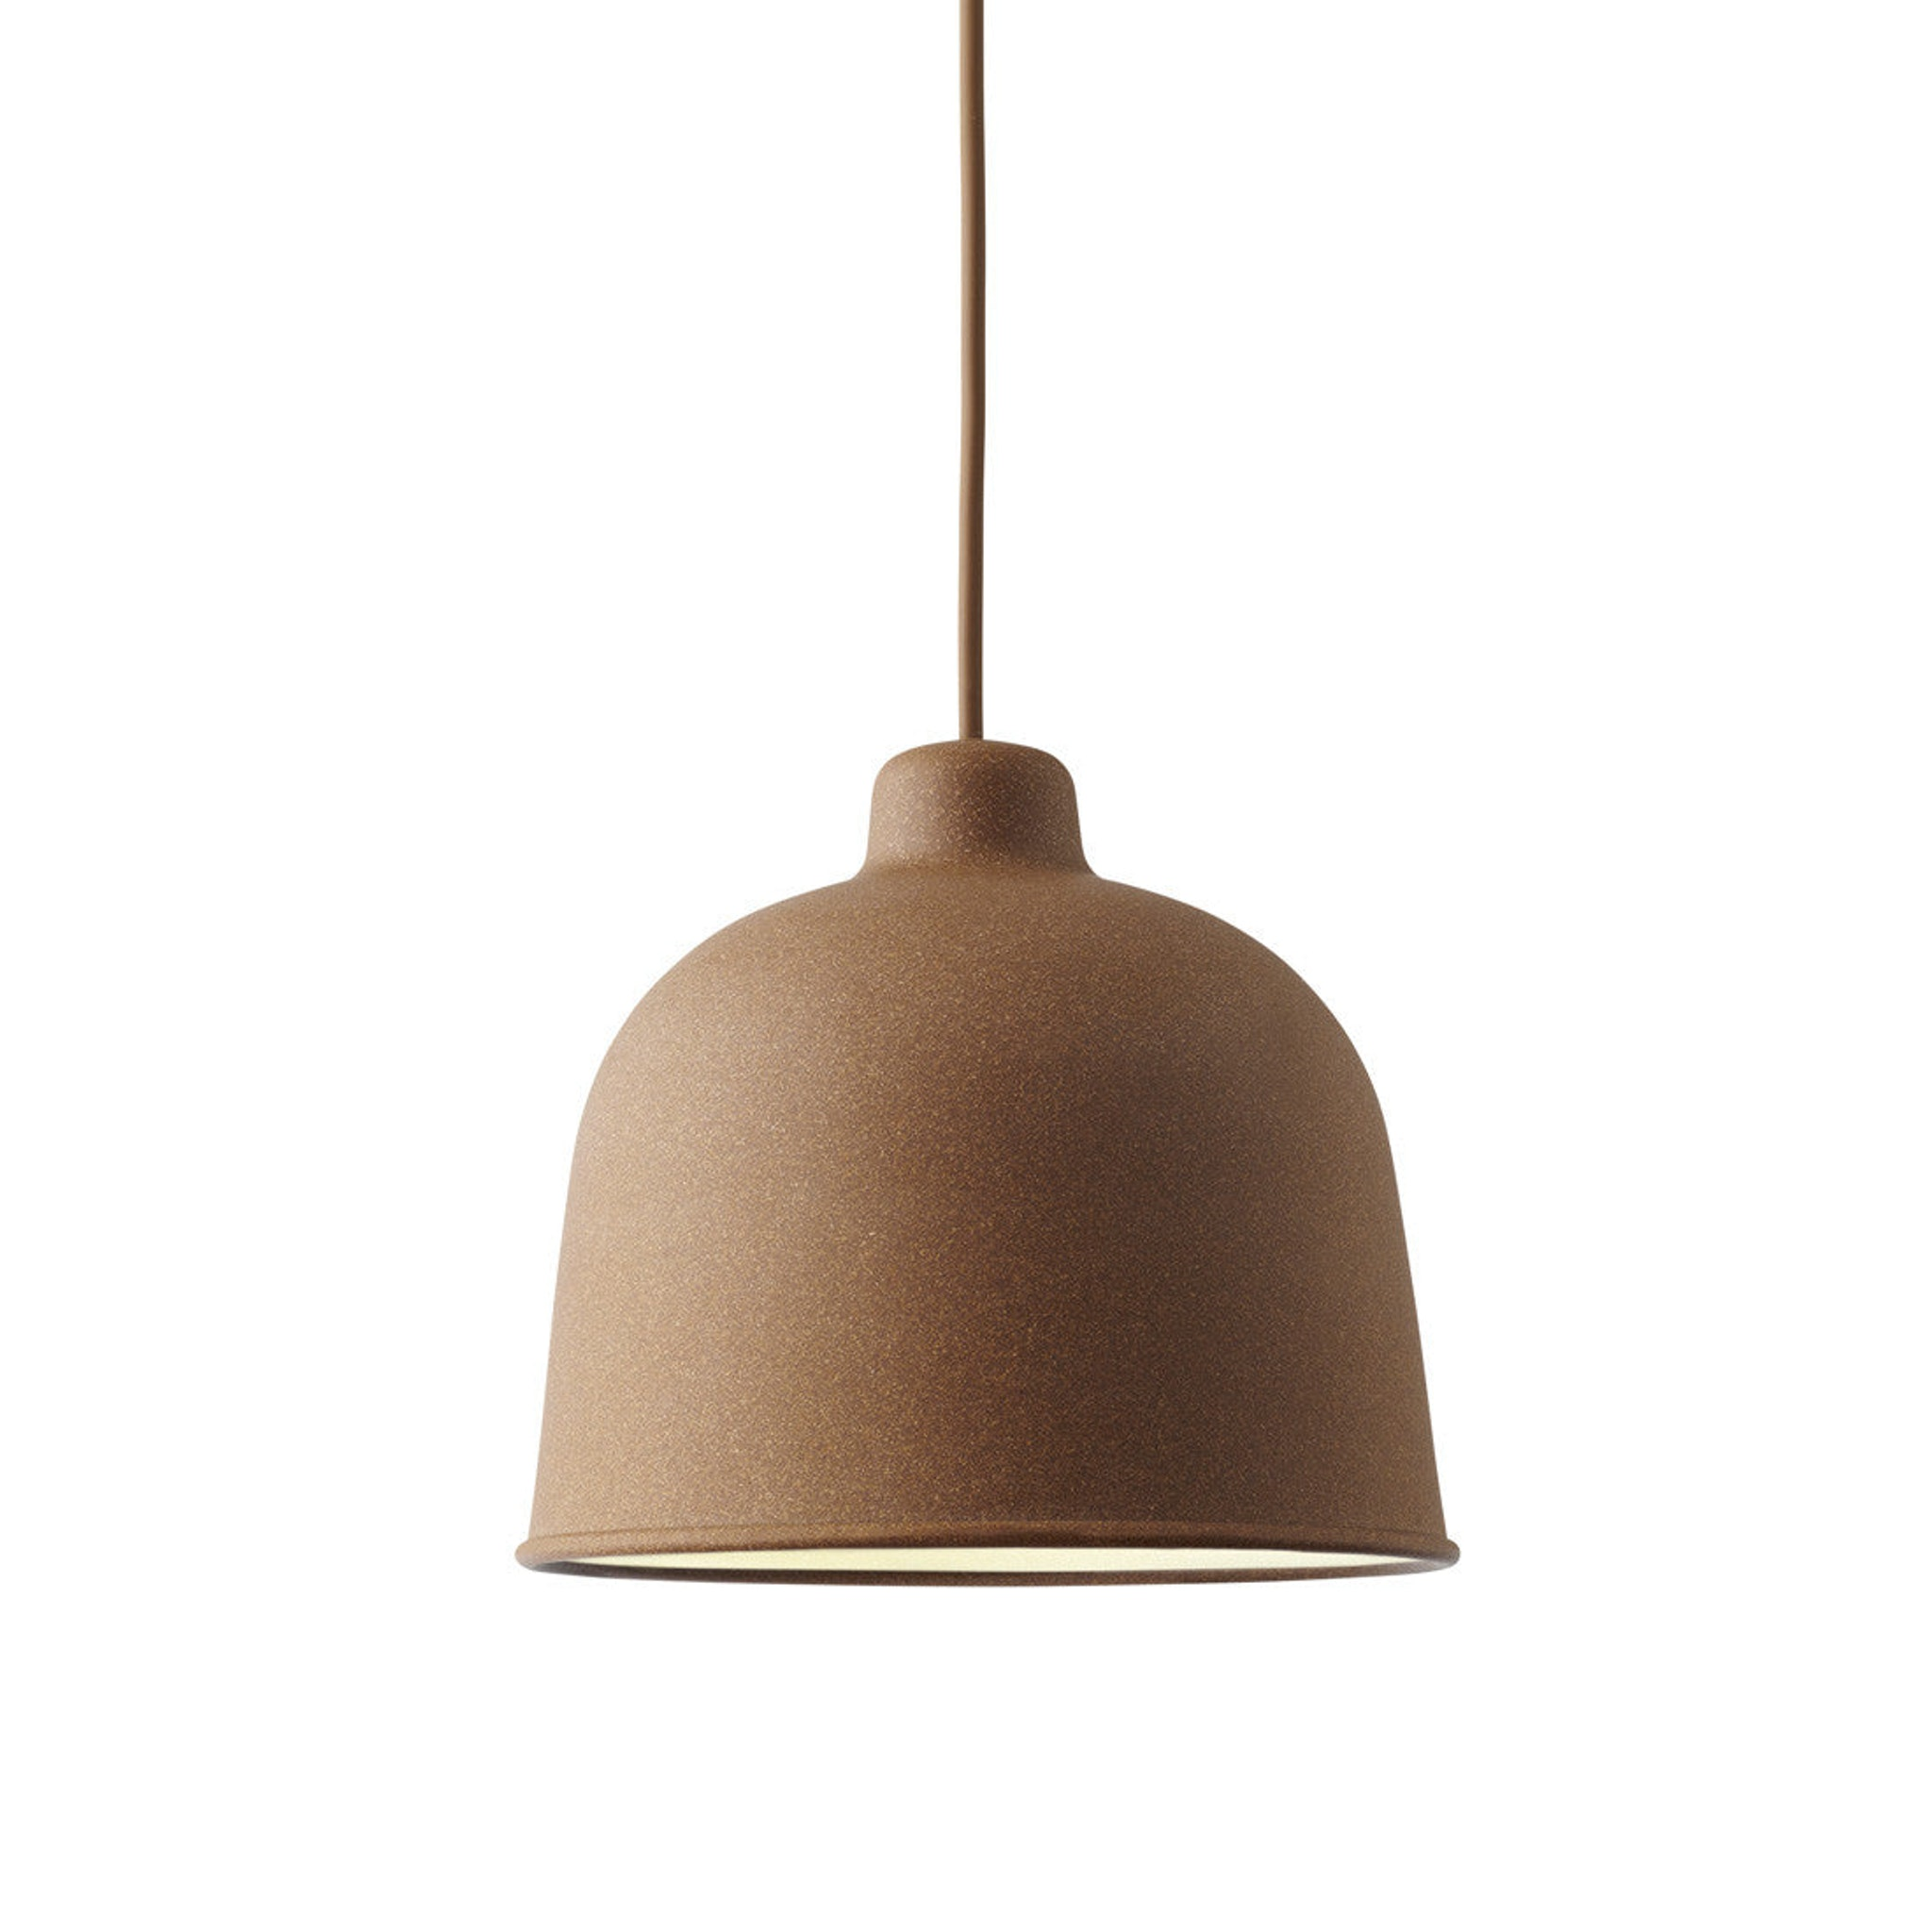 Grain Light by Muuto